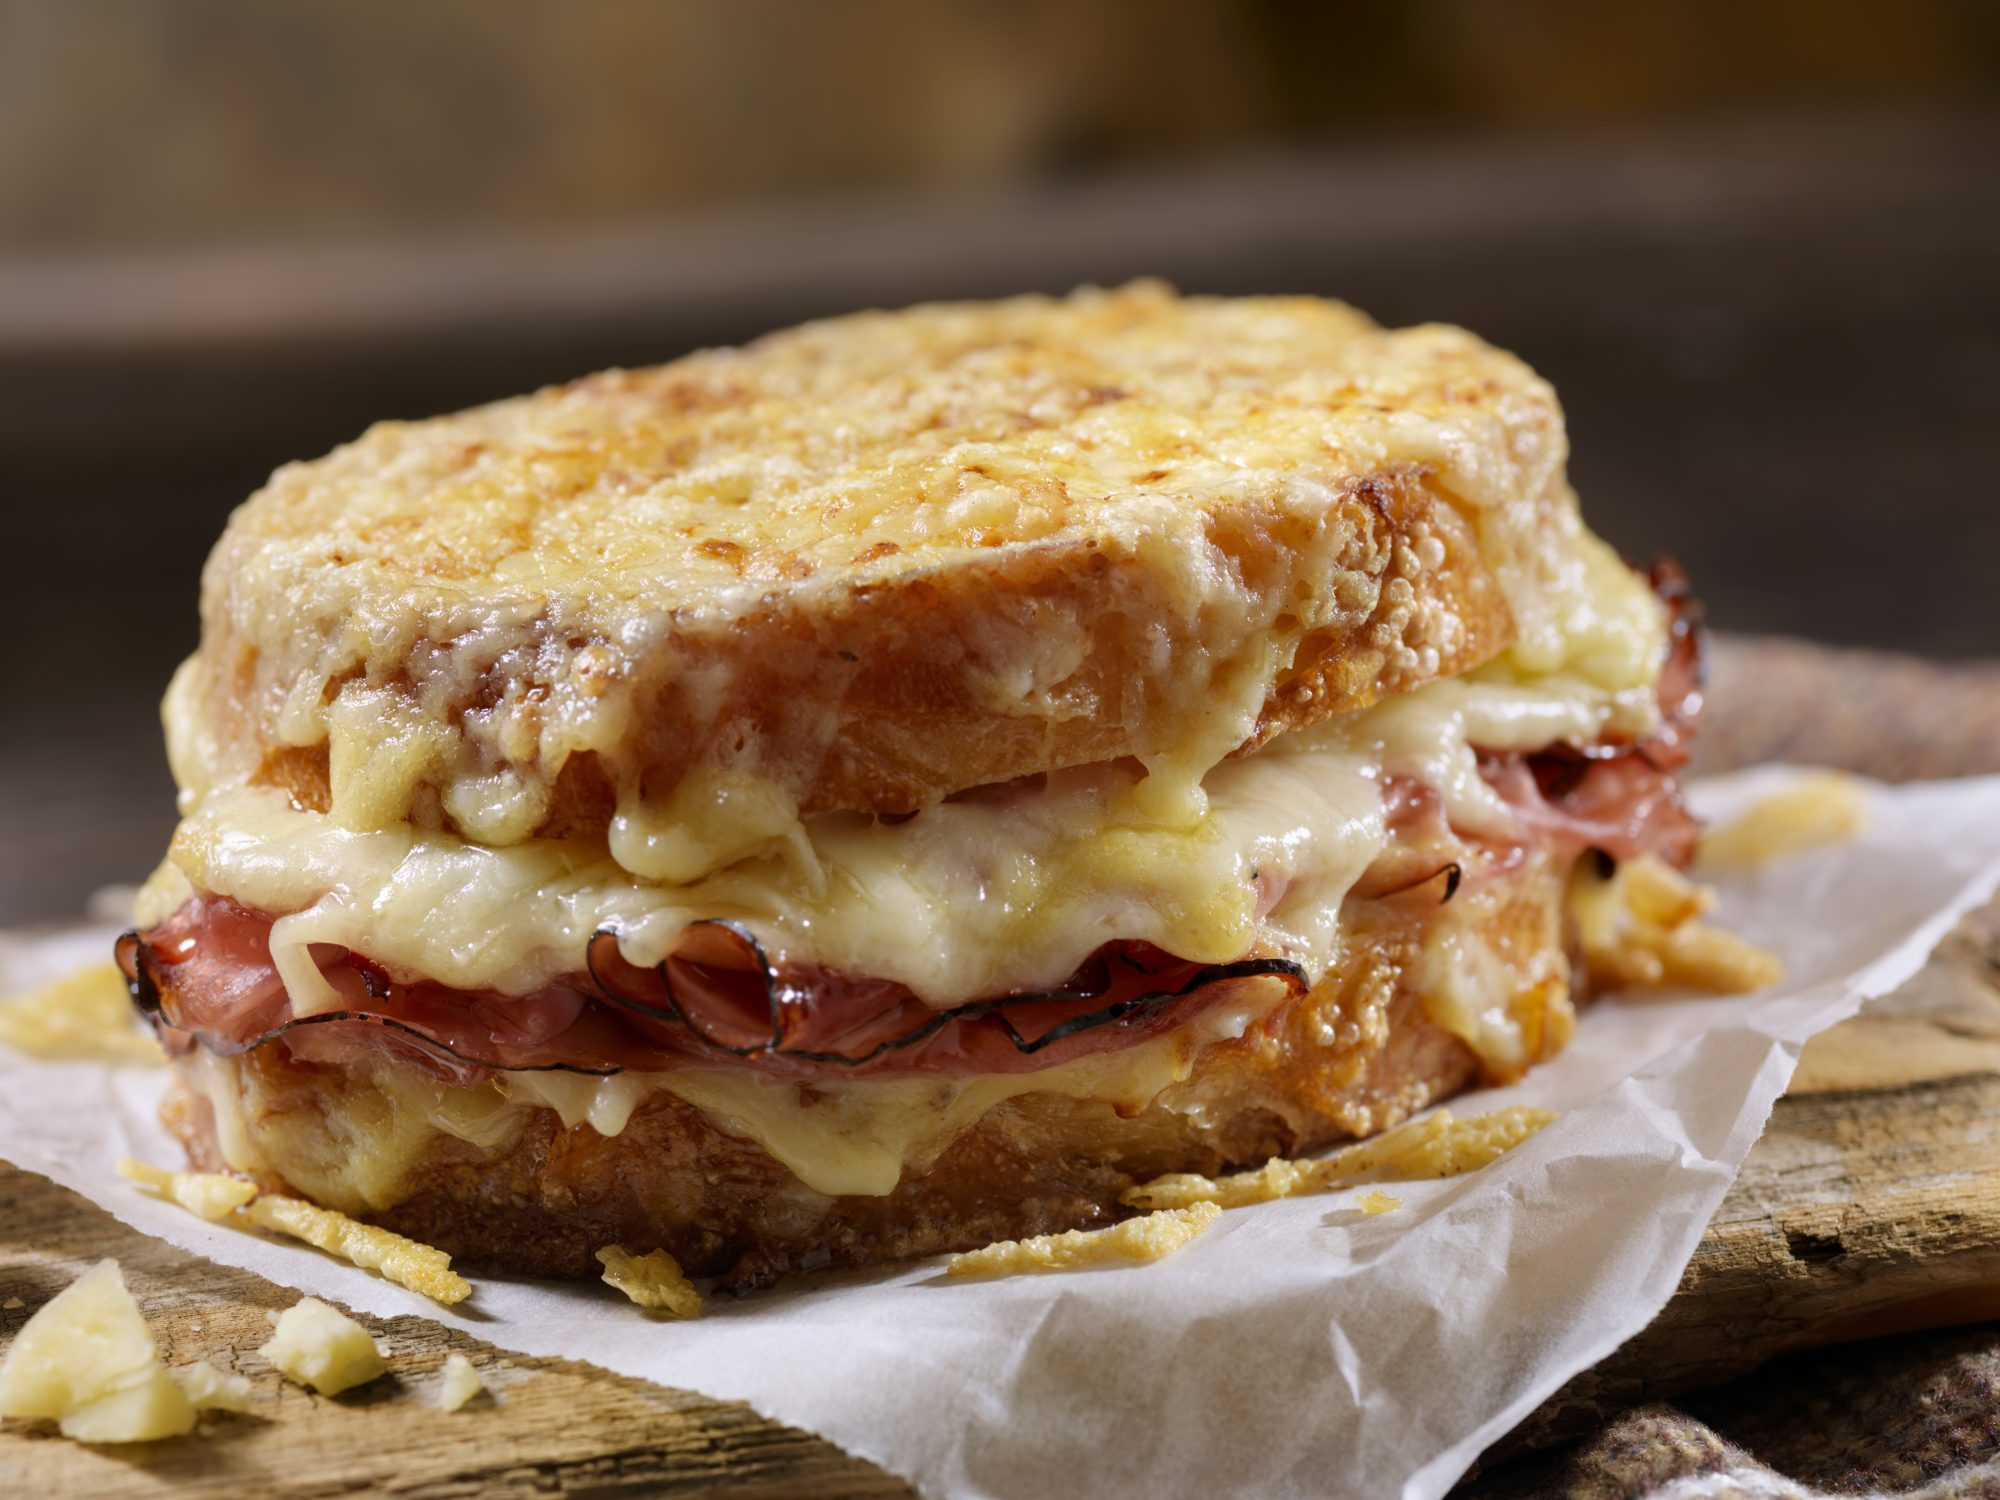 Croque Monsieur, Grilled Cheese Sandwich with Black Forest Ham, Gruyere and Bechamel Sauce